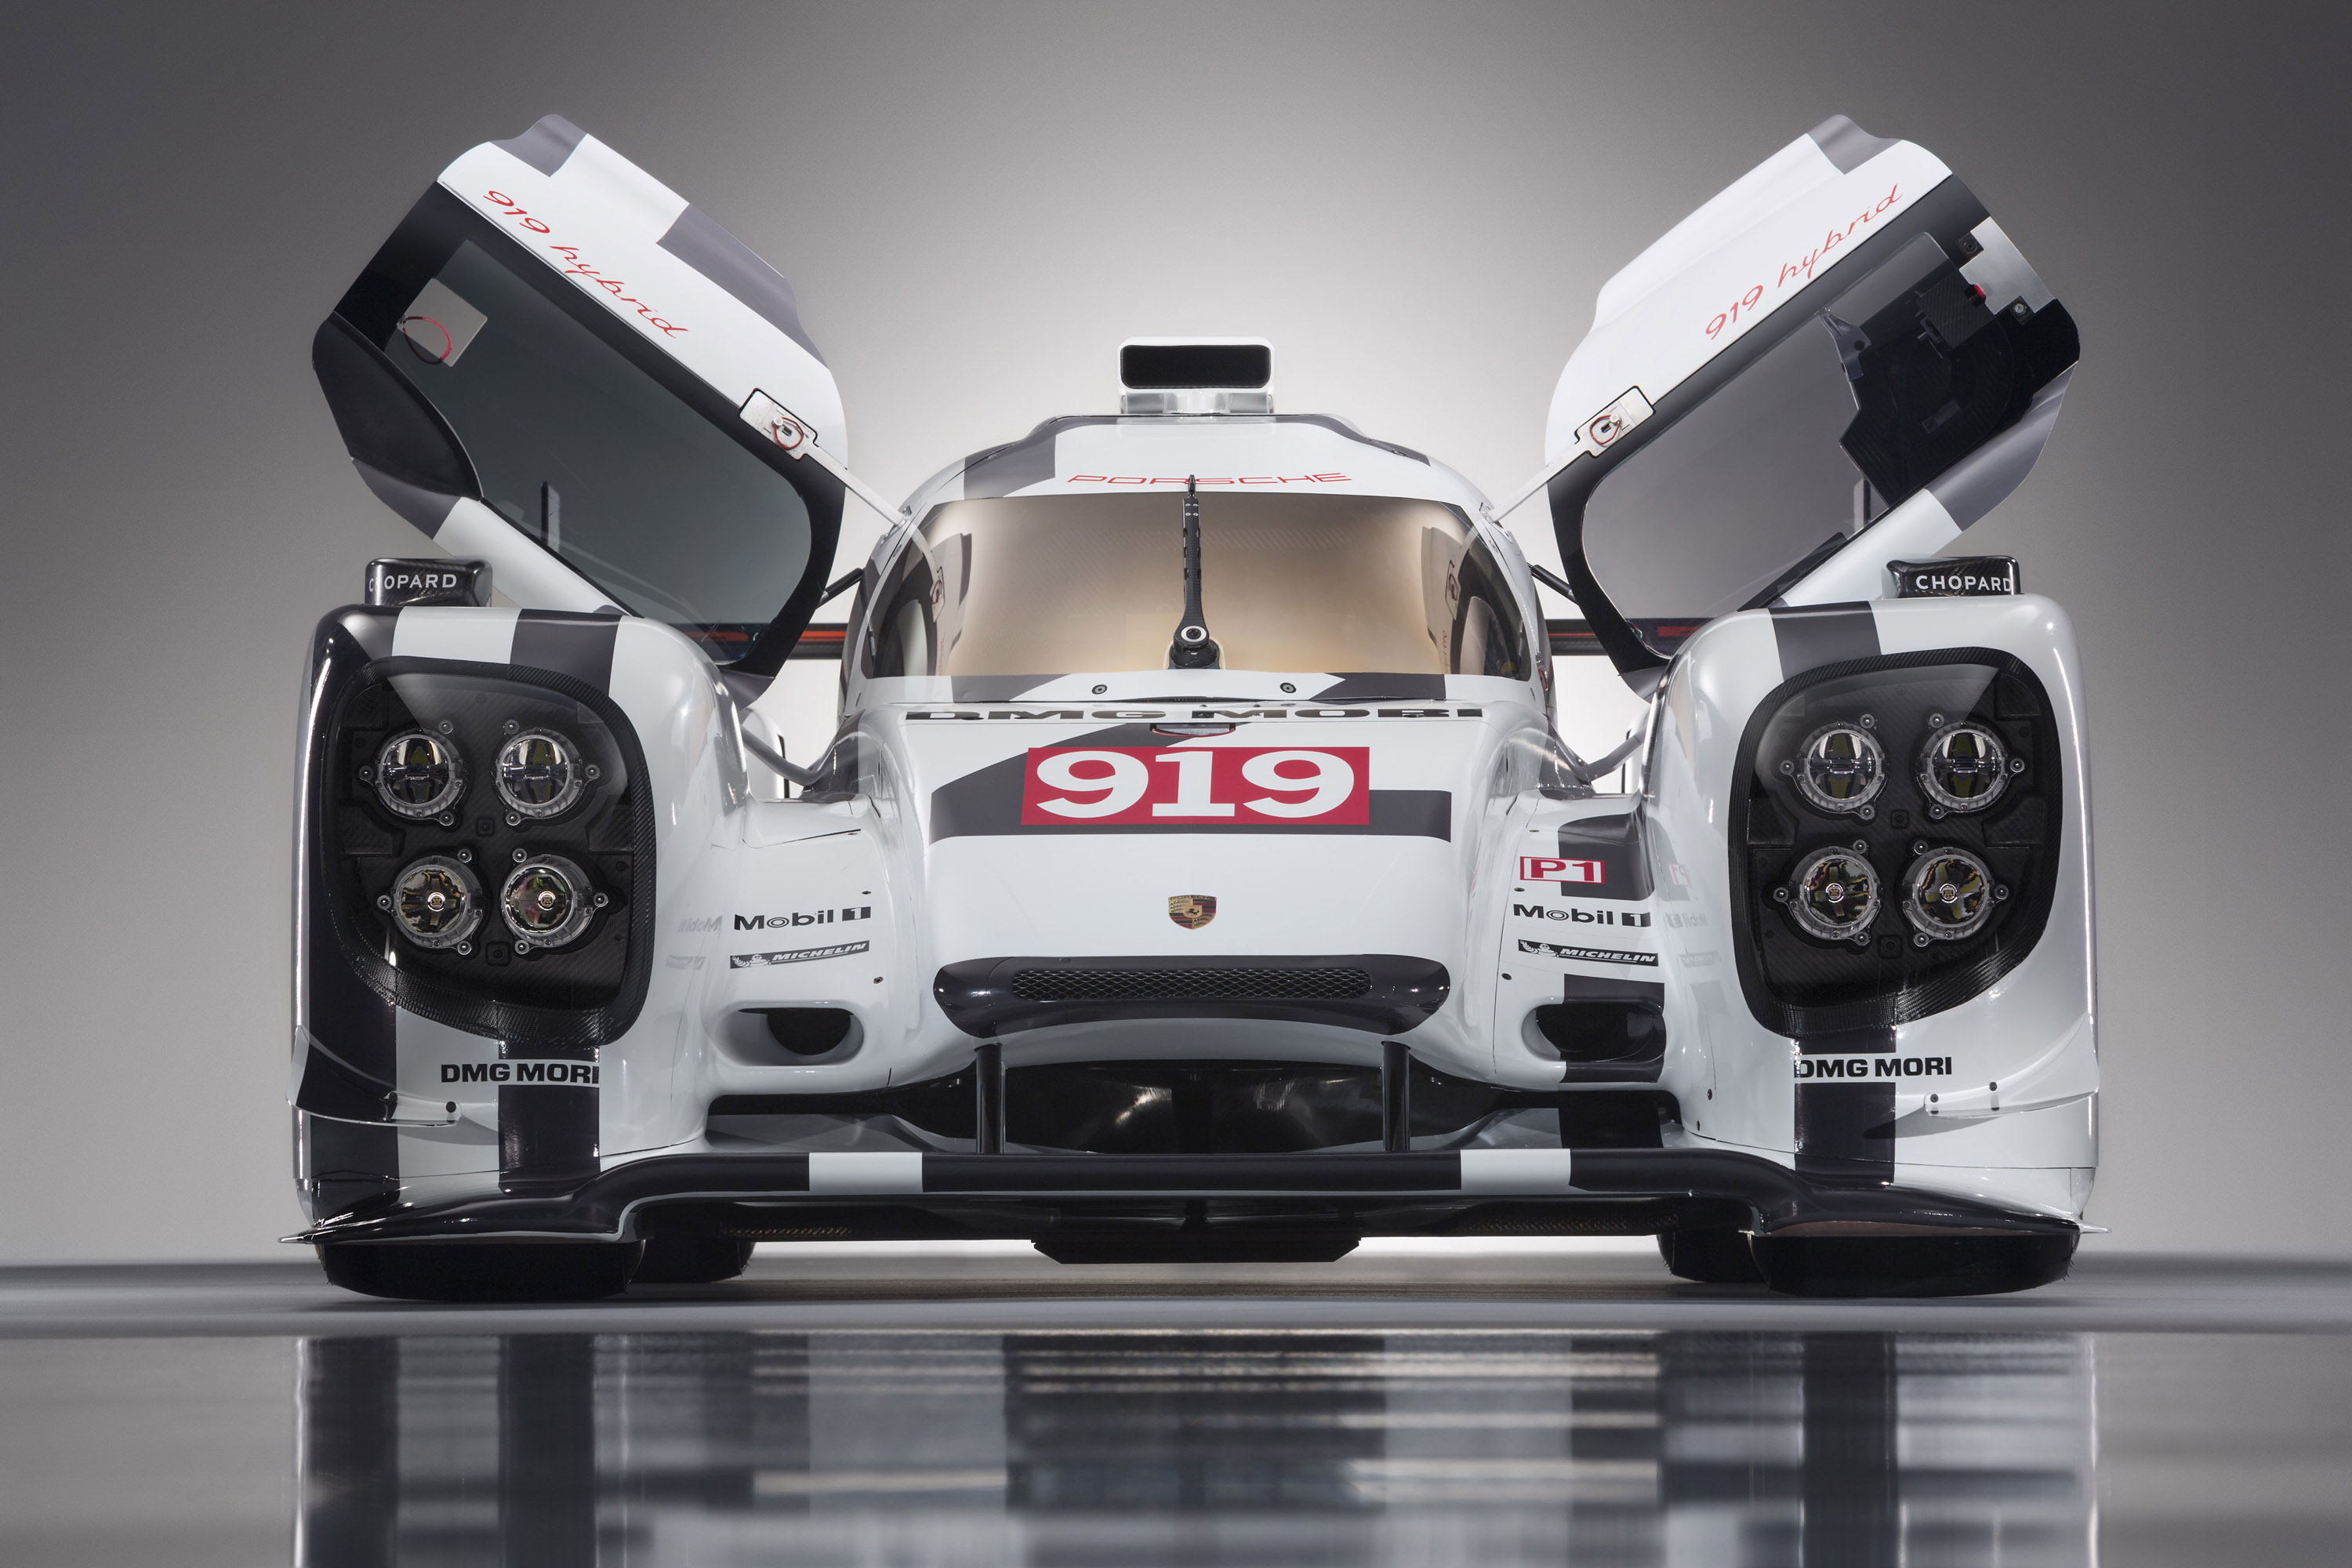 Porsche 919 Hybrid V4 2 0 Liter Turbo Engine